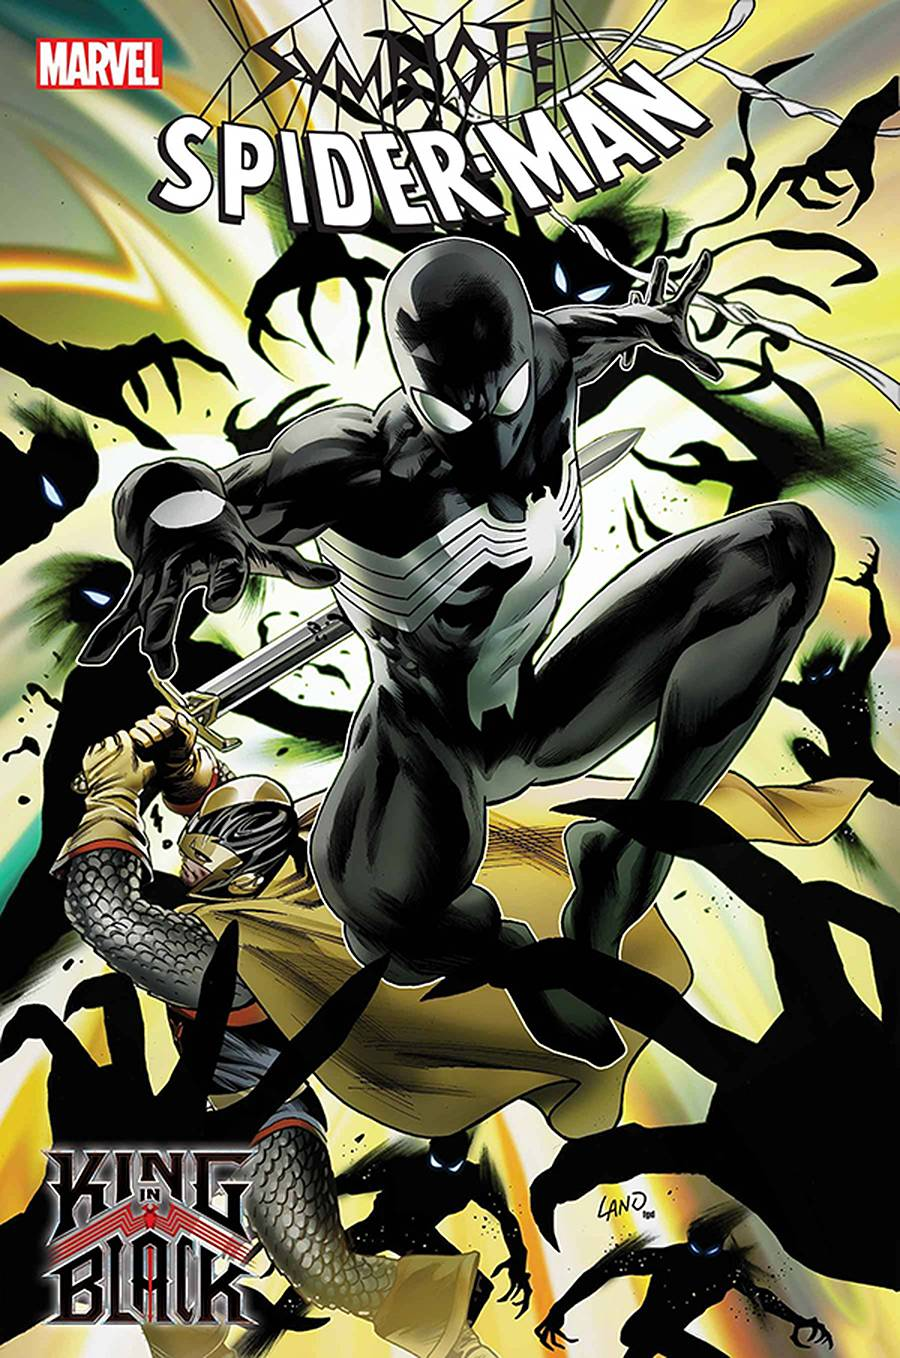 DF SYMBIOTE SPIDERMAN KING IN BLACK #2 DAVID SGN